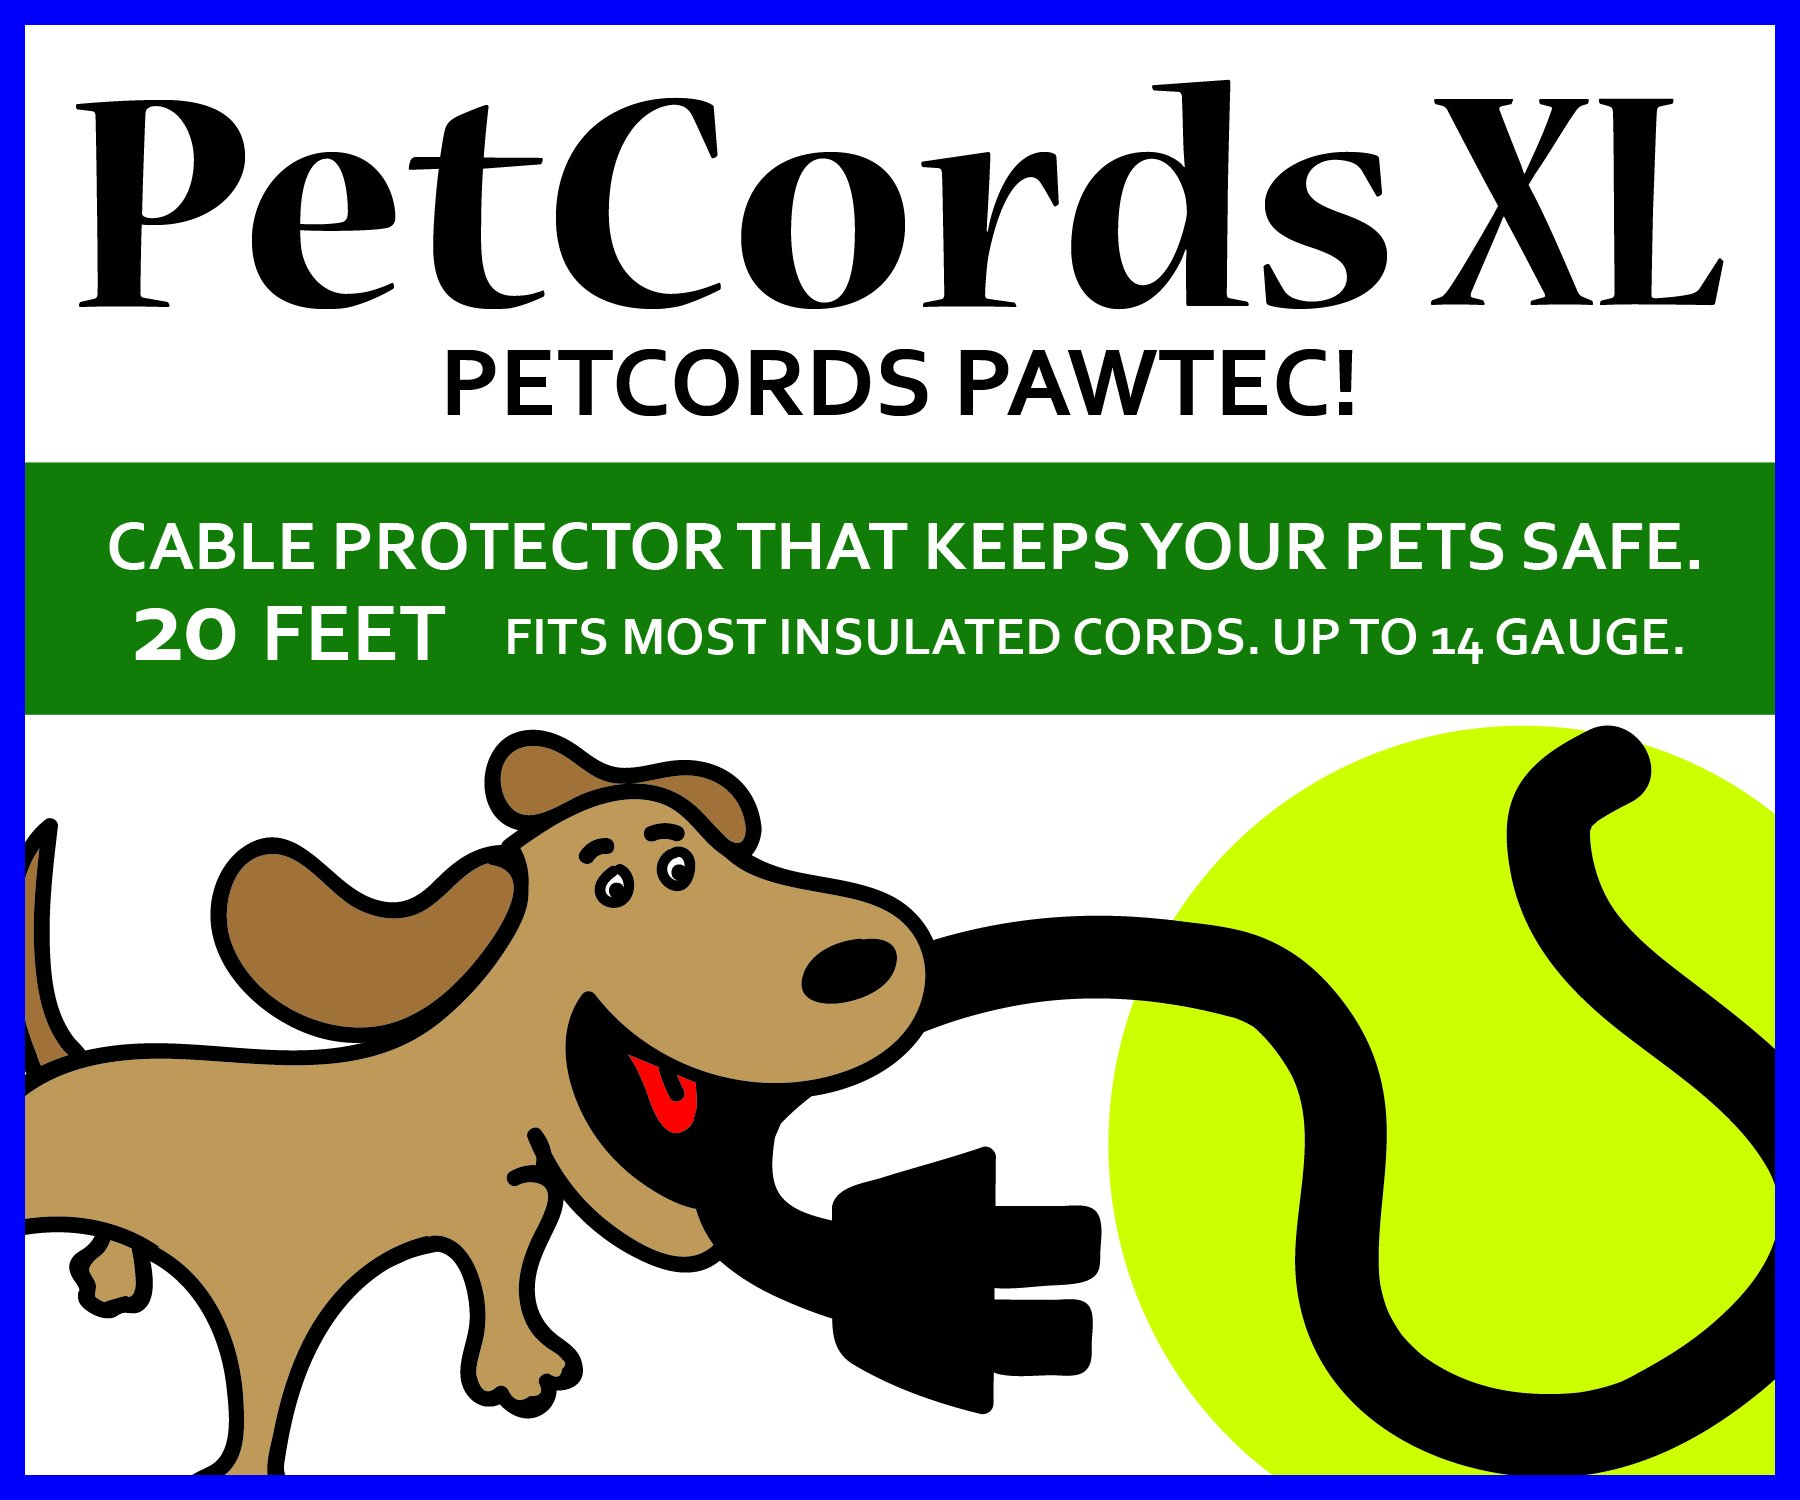 PetCords Dog and Cat Cord Protector- Protects Your Pets and Critters From Chewing Through Cables up to 20ft, XL- Unscented, Odorless MADE IN USA